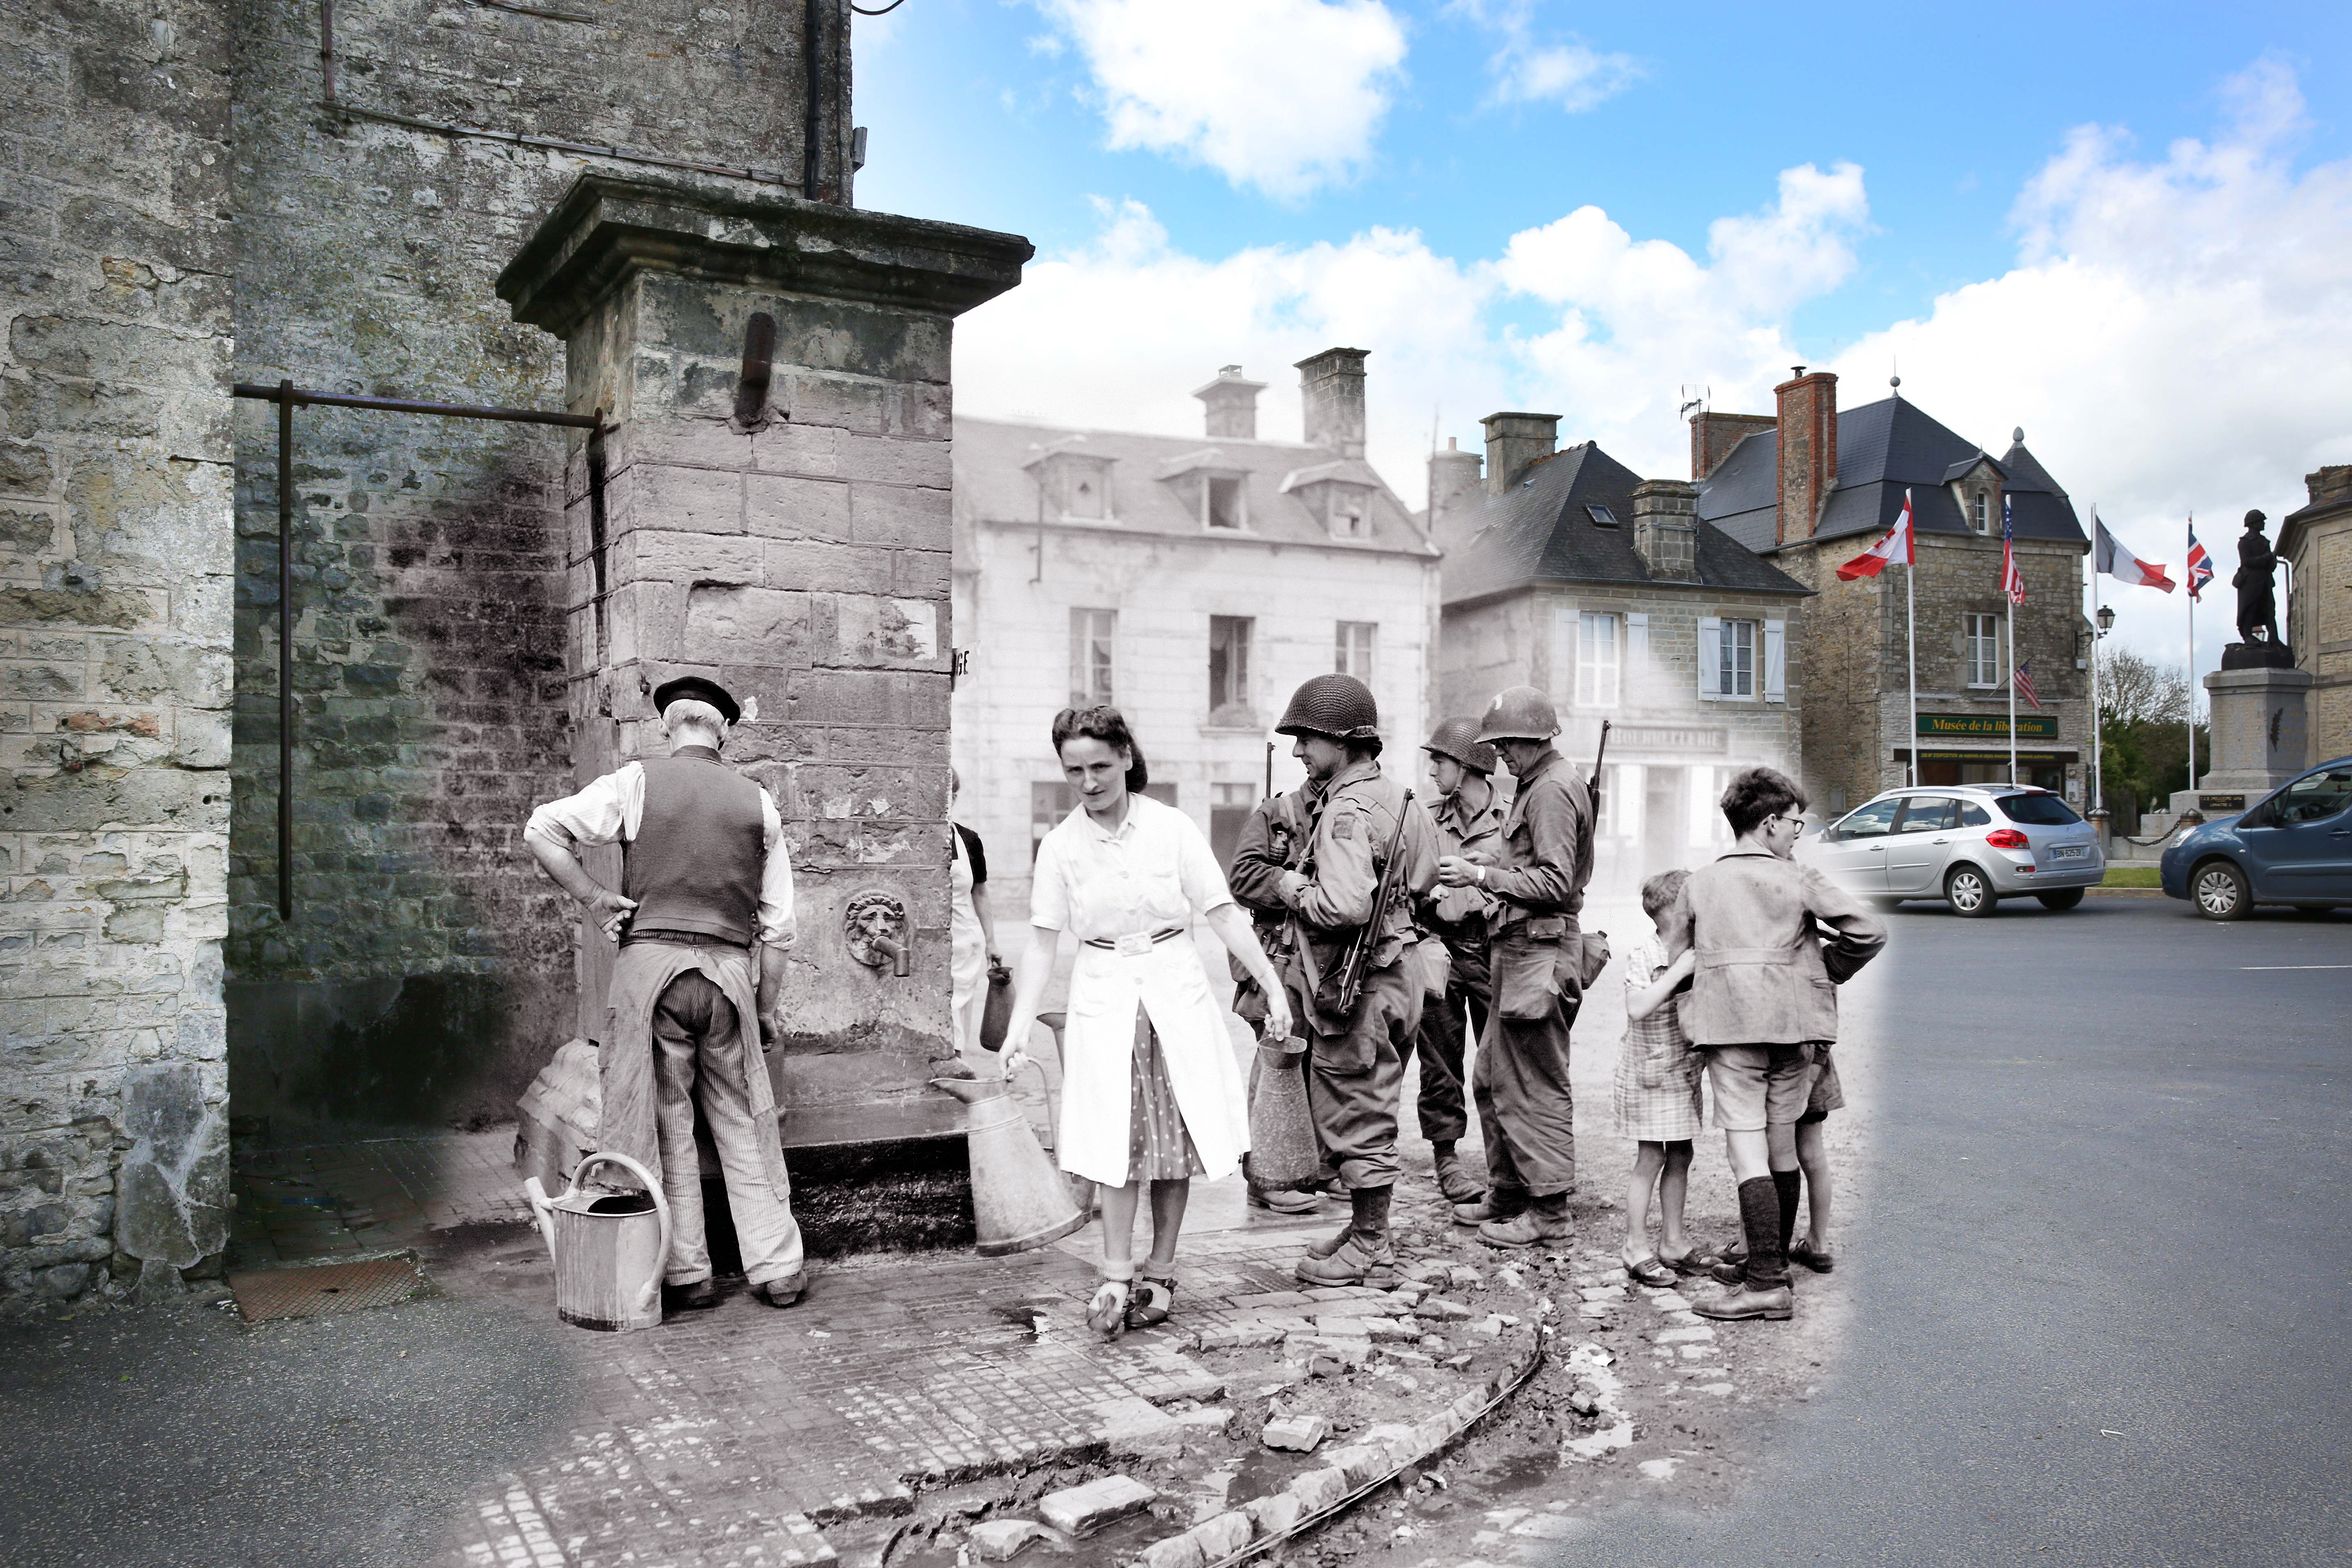 A view of the old village fountain on May 7, 2014 in Sainte Marie du Mont, France. Overlay: A woman walks away with two pitchers while three children are watching the scene, and an old man fetches water next to a GI expecting to wash his bowls on June 12, 1944.